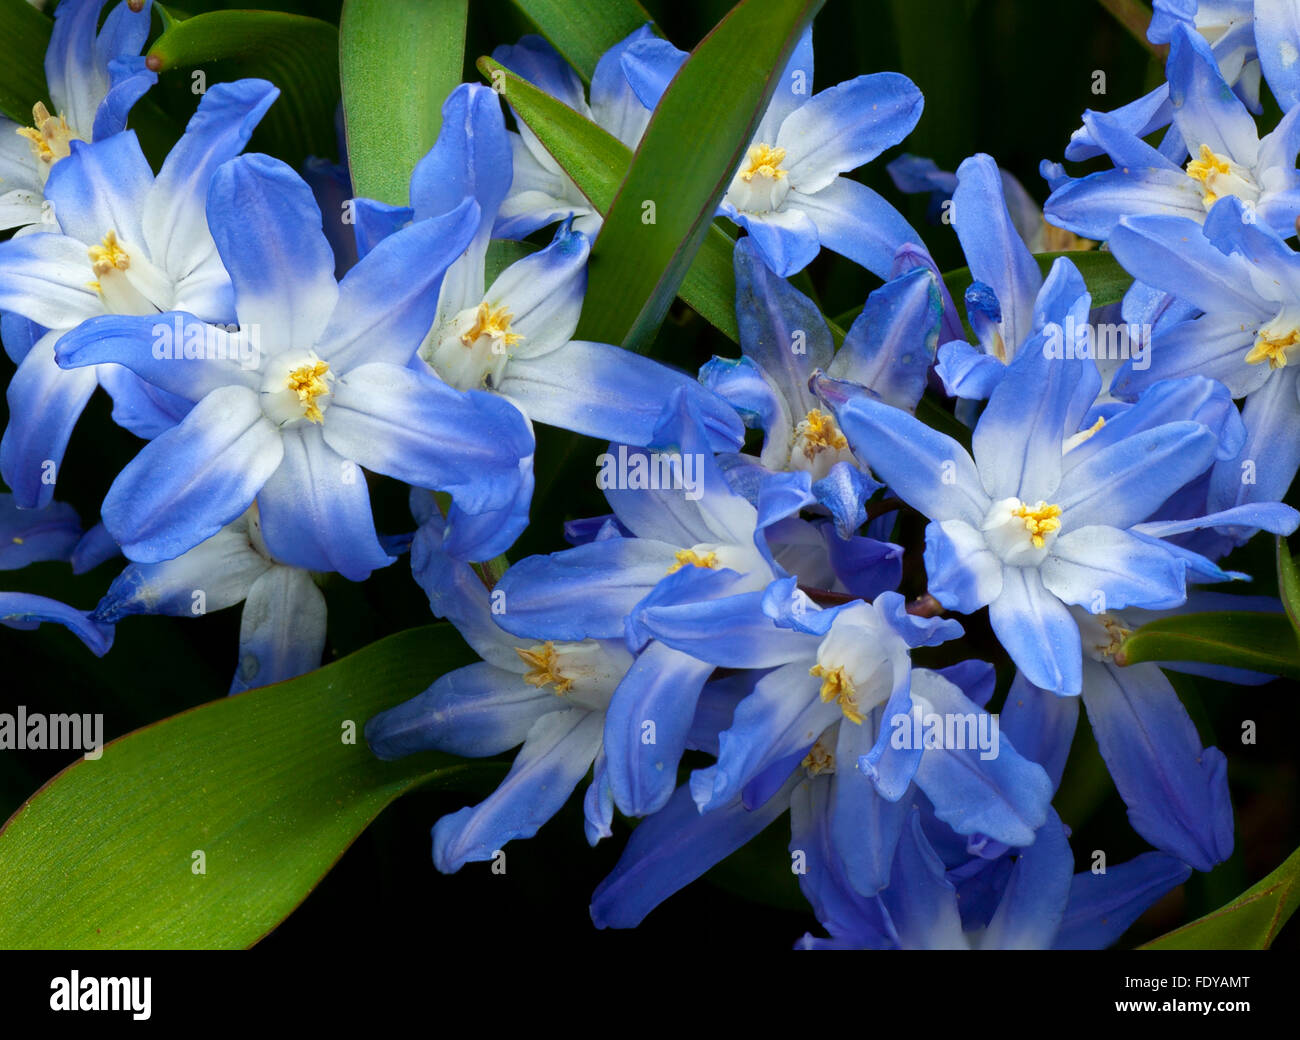 Detail of Glory of the Snow (Chionodoxa luciliae) an early spring flower - Stock Image